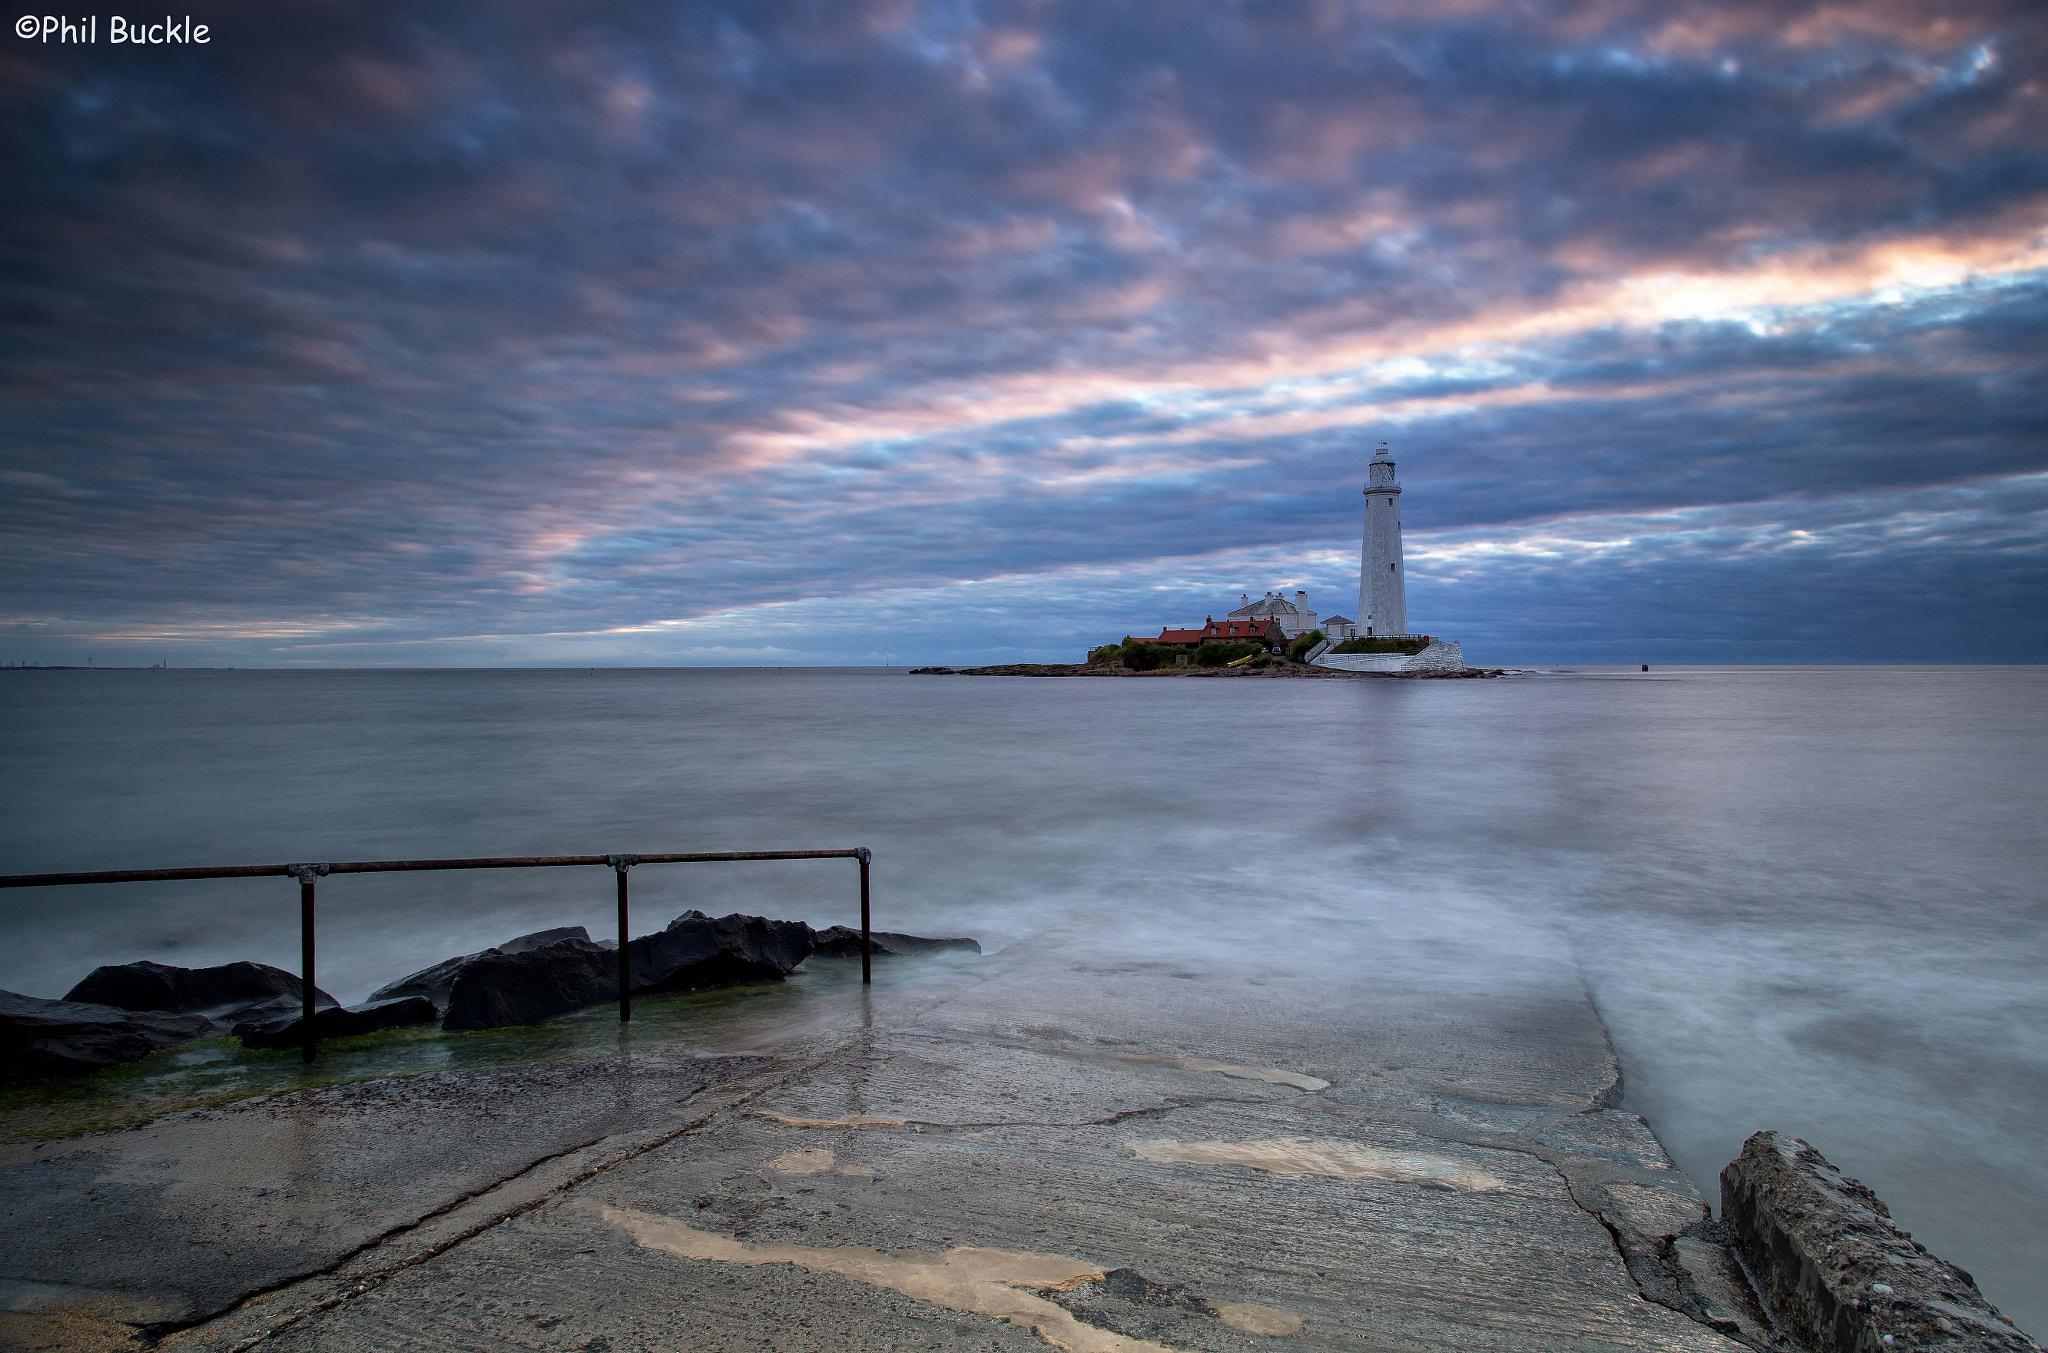 Photograph St Mary's sunrise by Phil Buckle on 500px